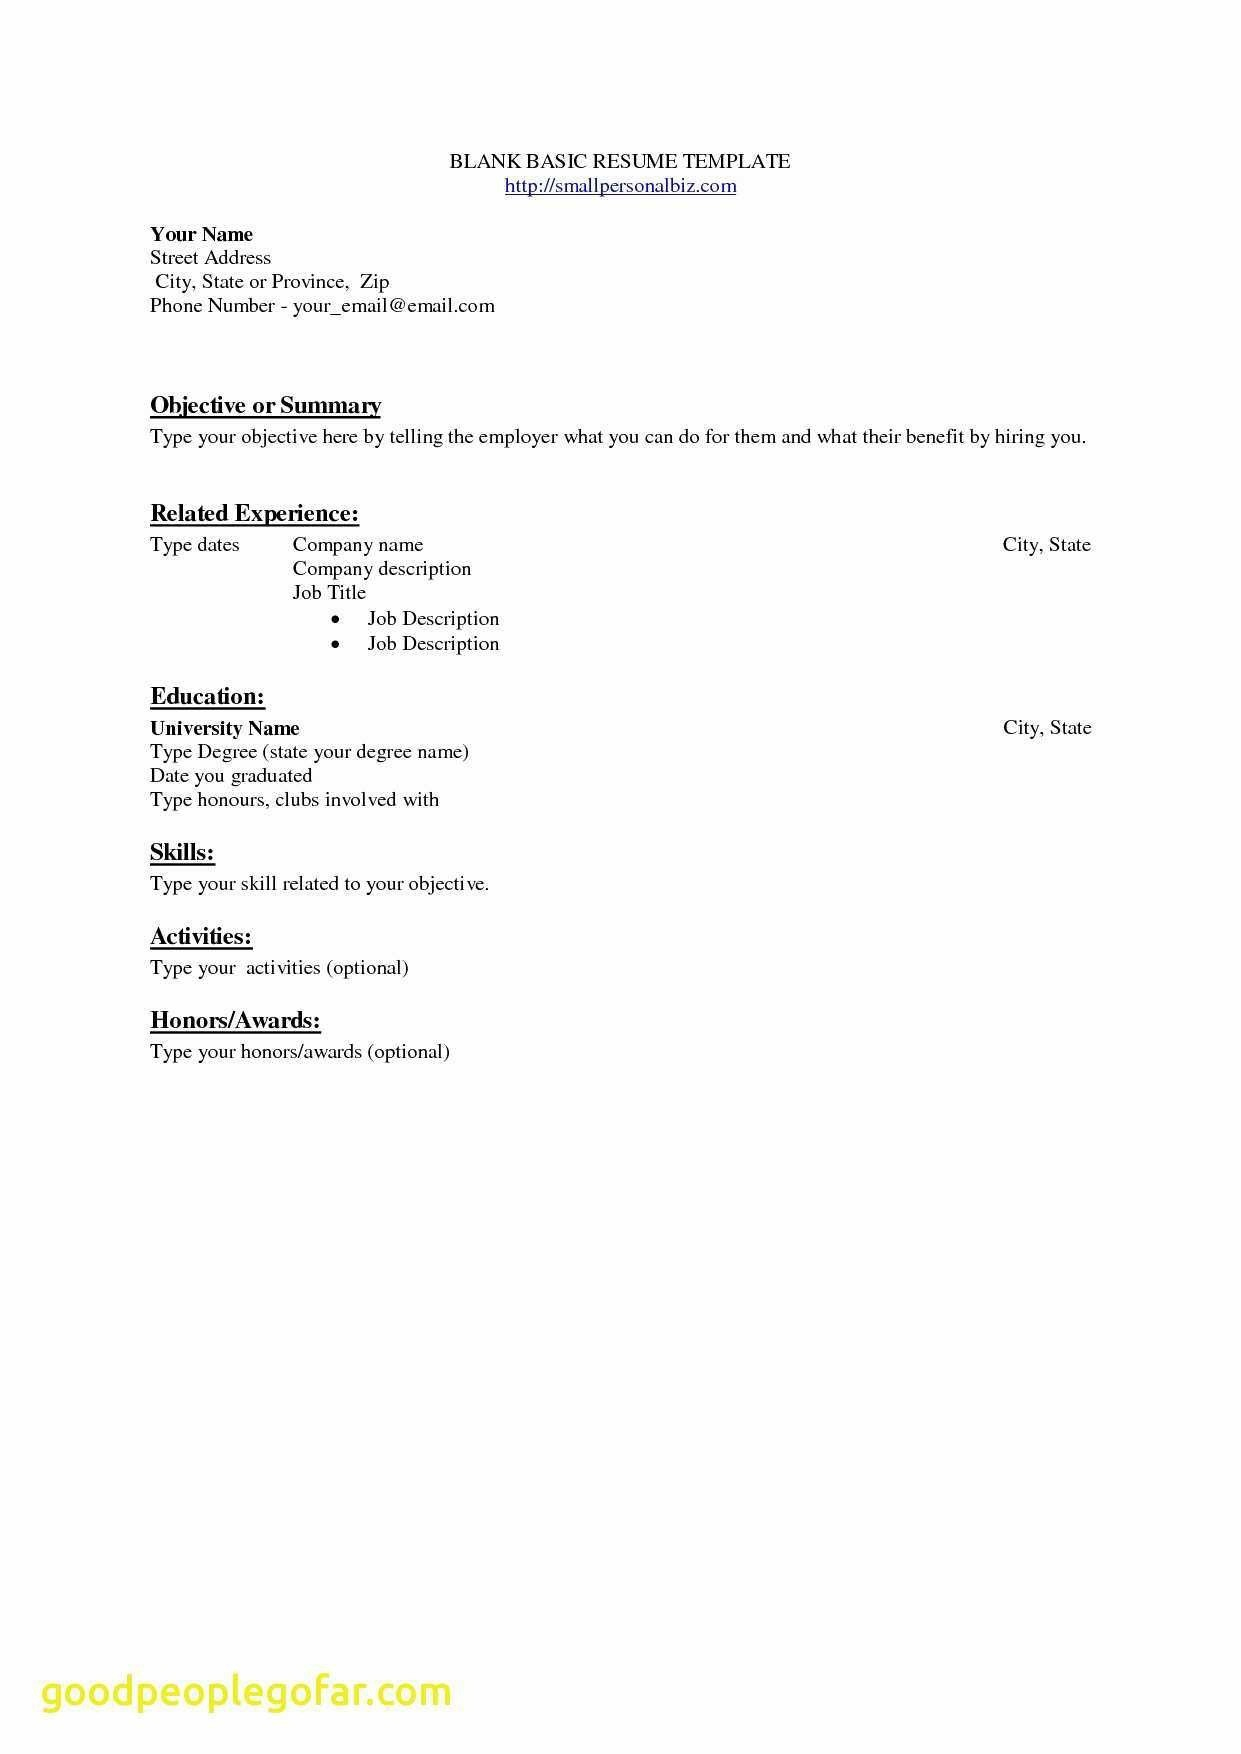 What Companies Look for In A Resume - What Does A Professional Resume Look Like New Luxury Resume Tem